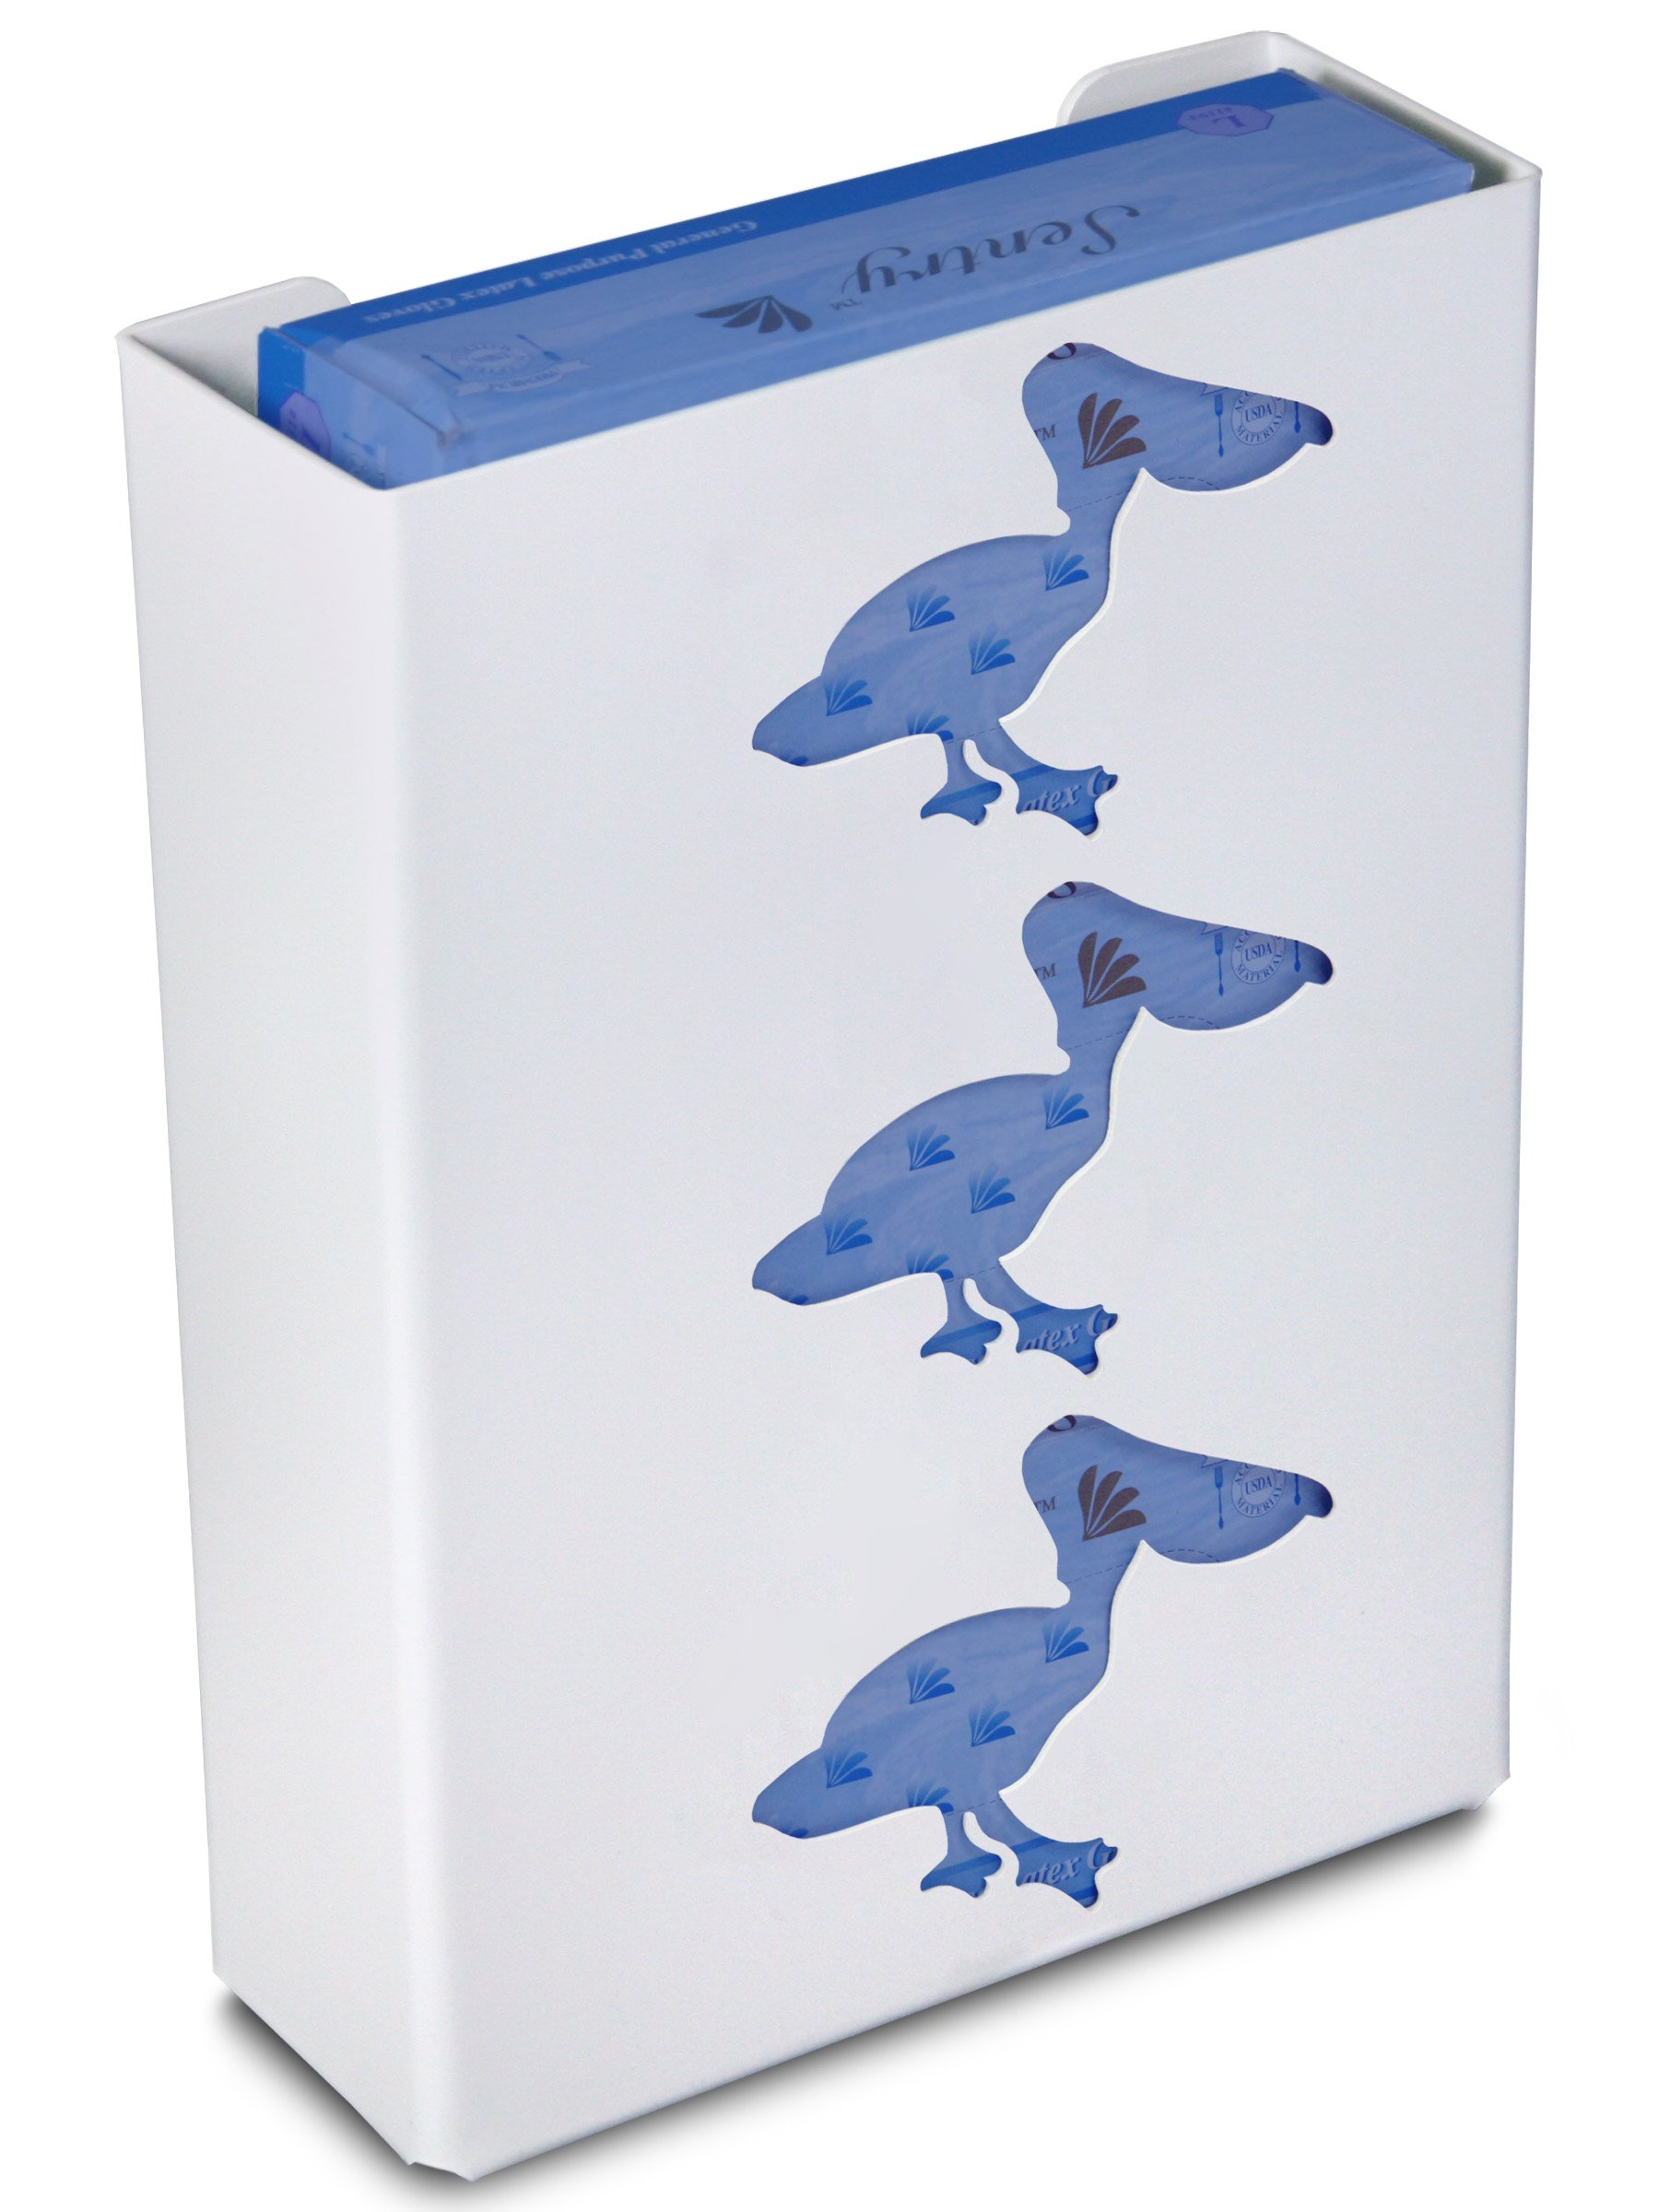 TrippNT 50865 Priced Right Triple Glove Box Holder with Pelican, 11'' Width x 15'' Height x 4'' Depth